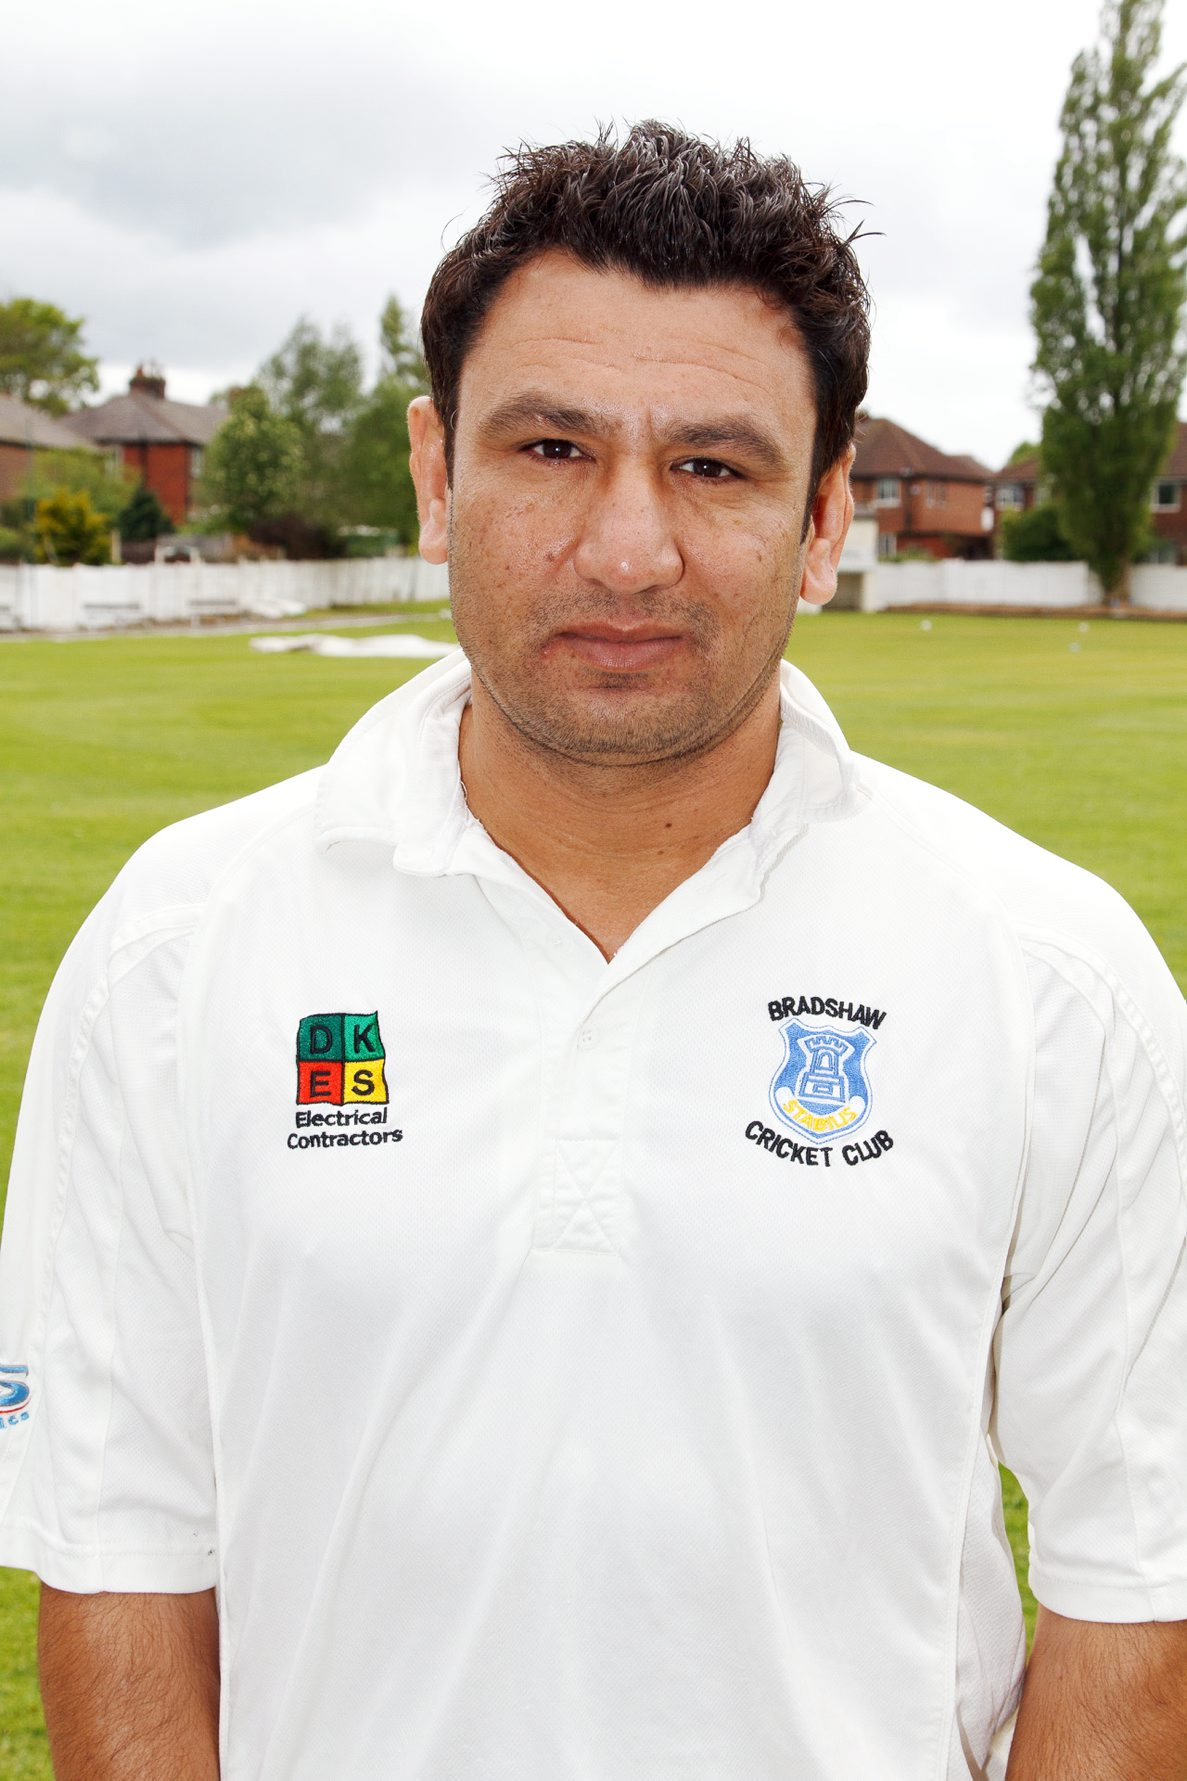 Bradshaw captain Saeed Anwar Jnr took six wickets and two catches in the win against Heaton